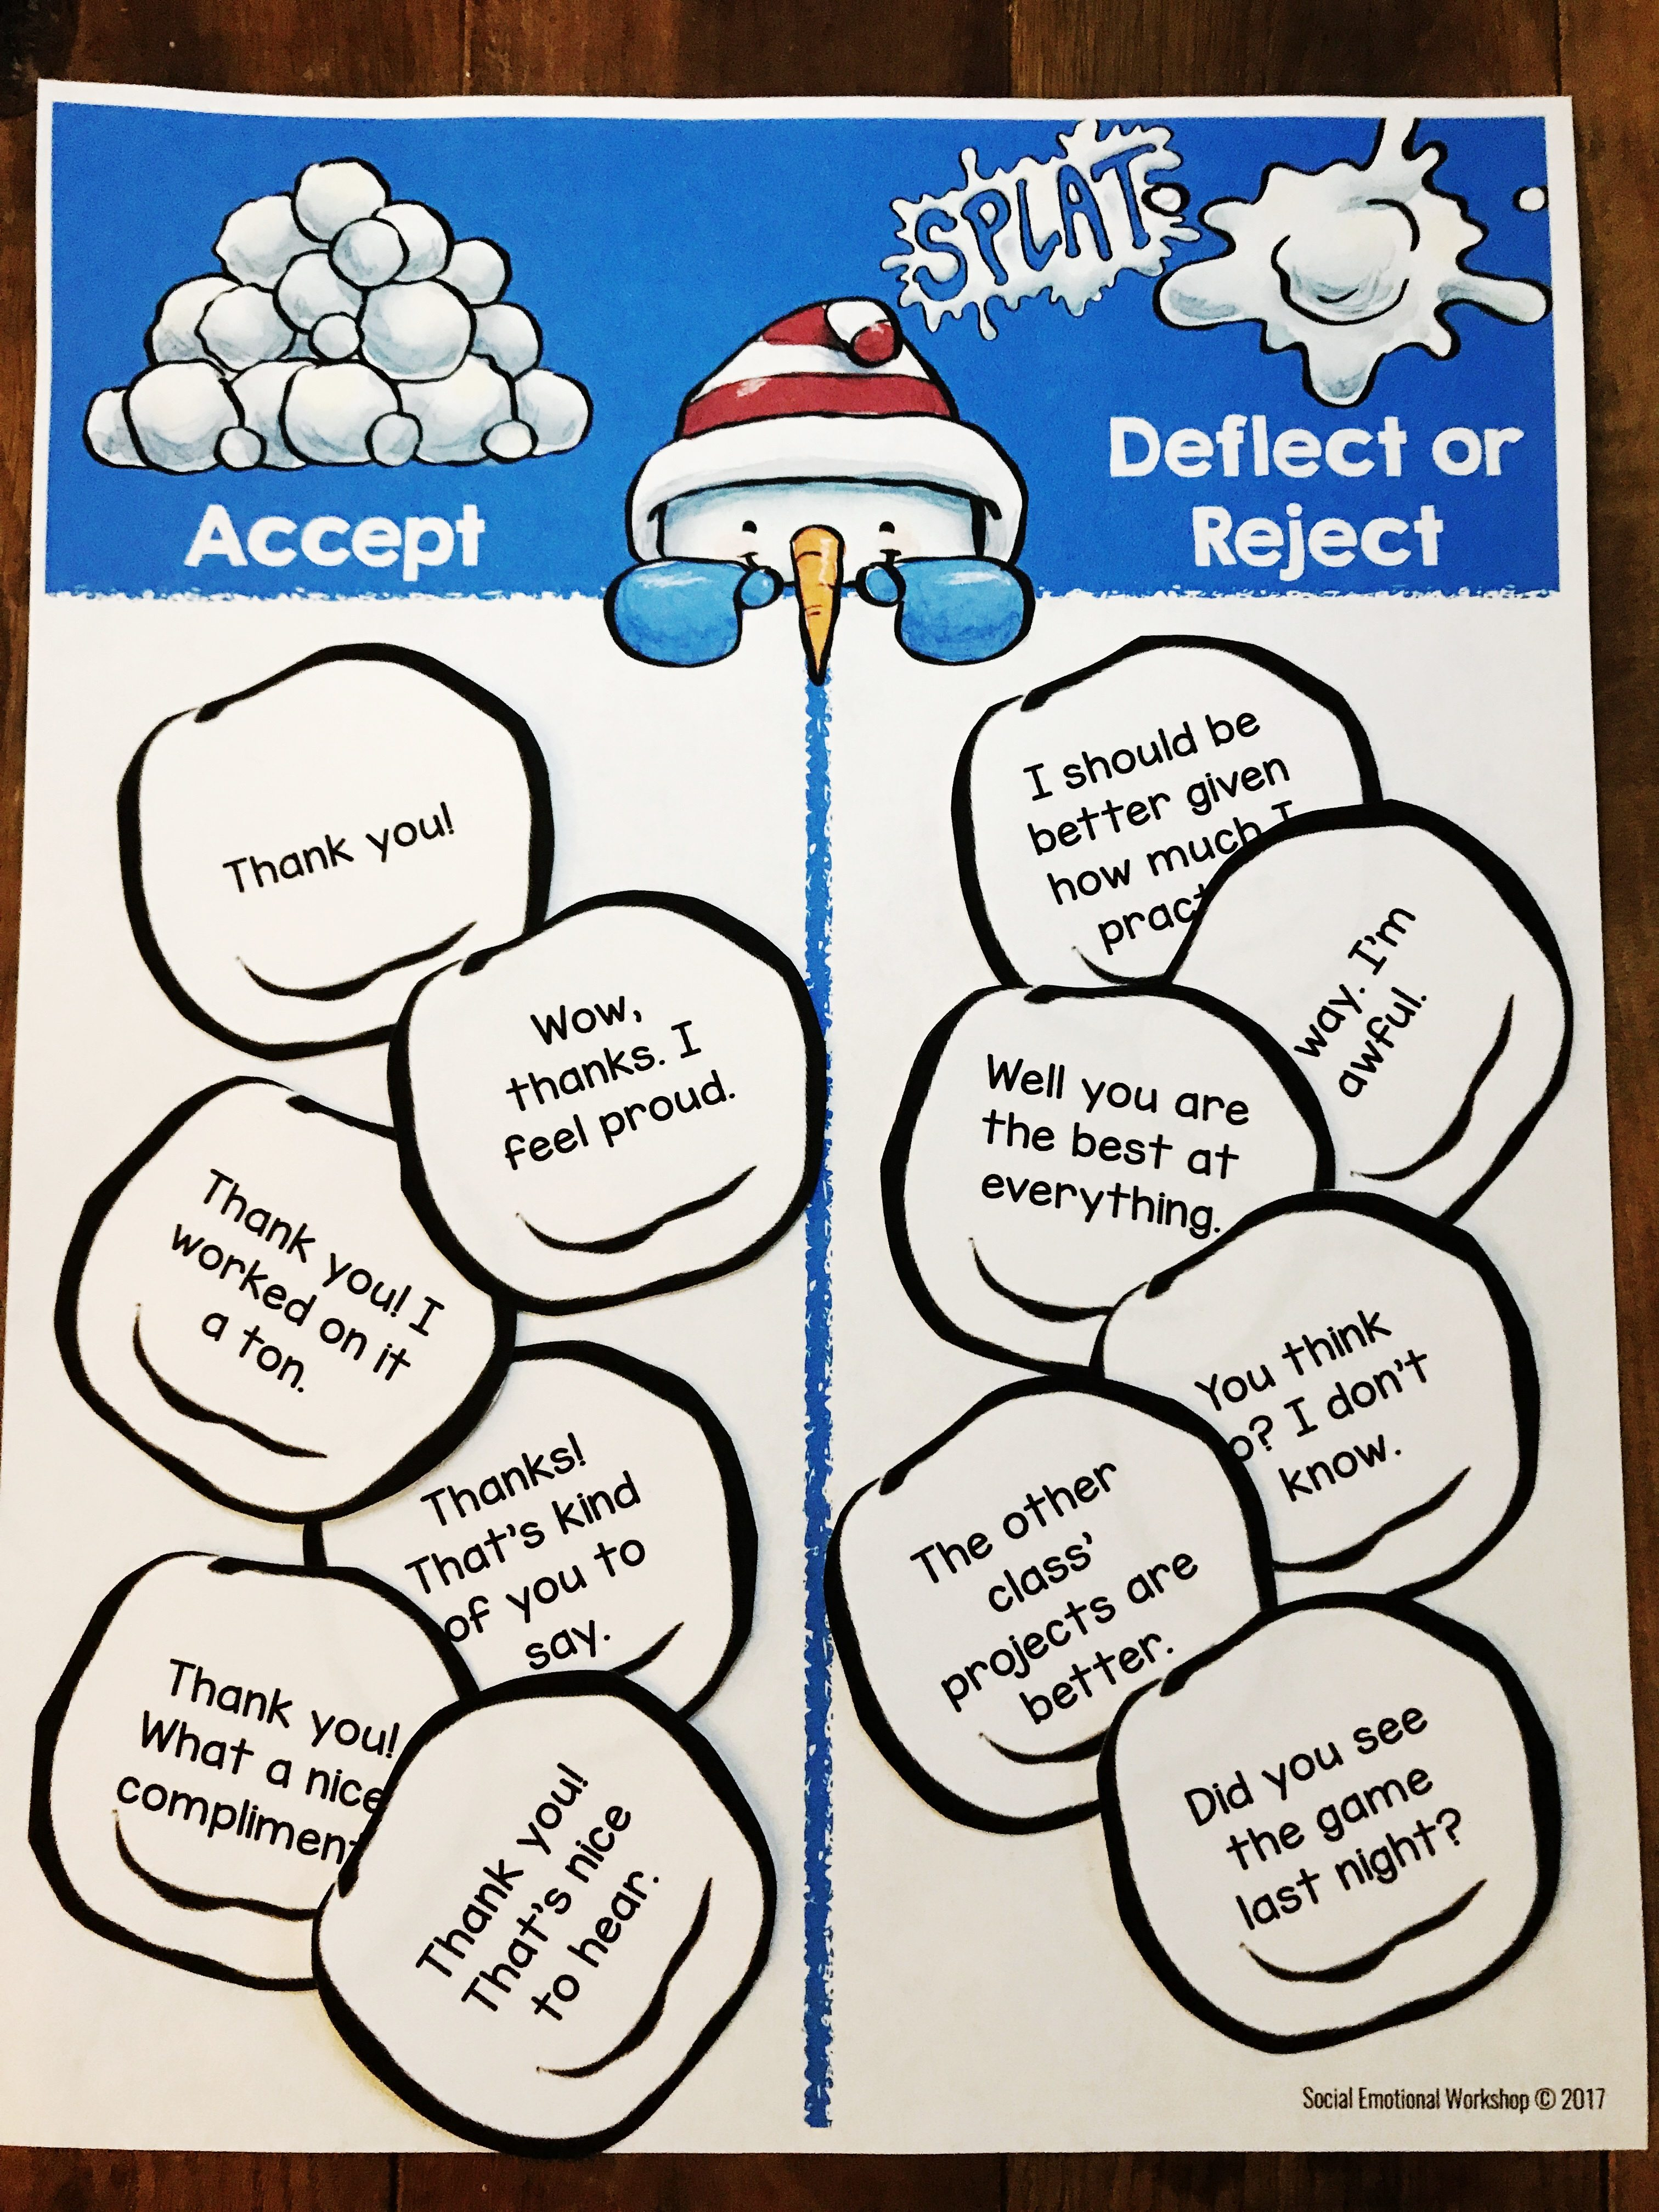 teaching students to learn to accept compliments by recognizing not so great responses.